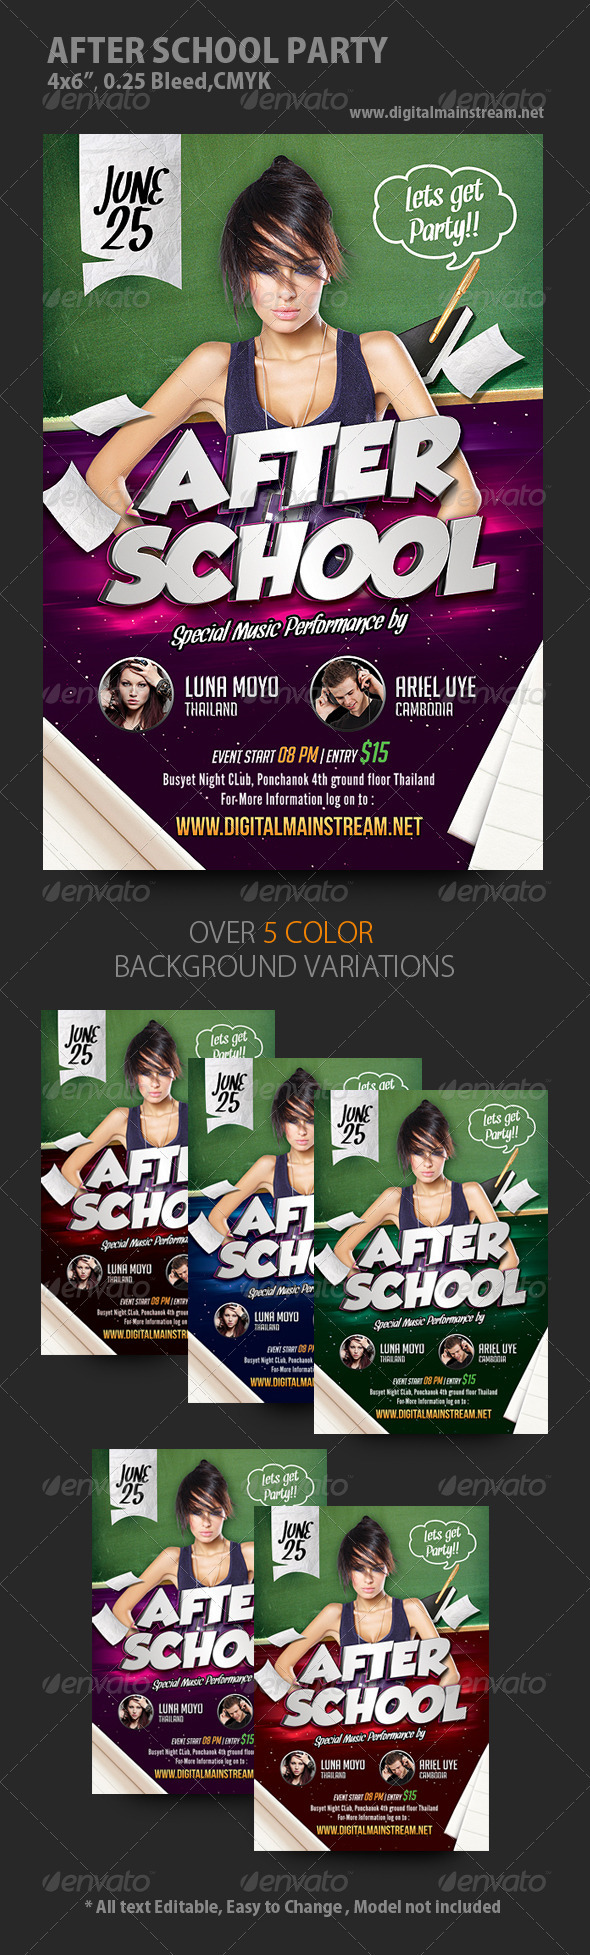 After School Party Flyer - Events Flyers